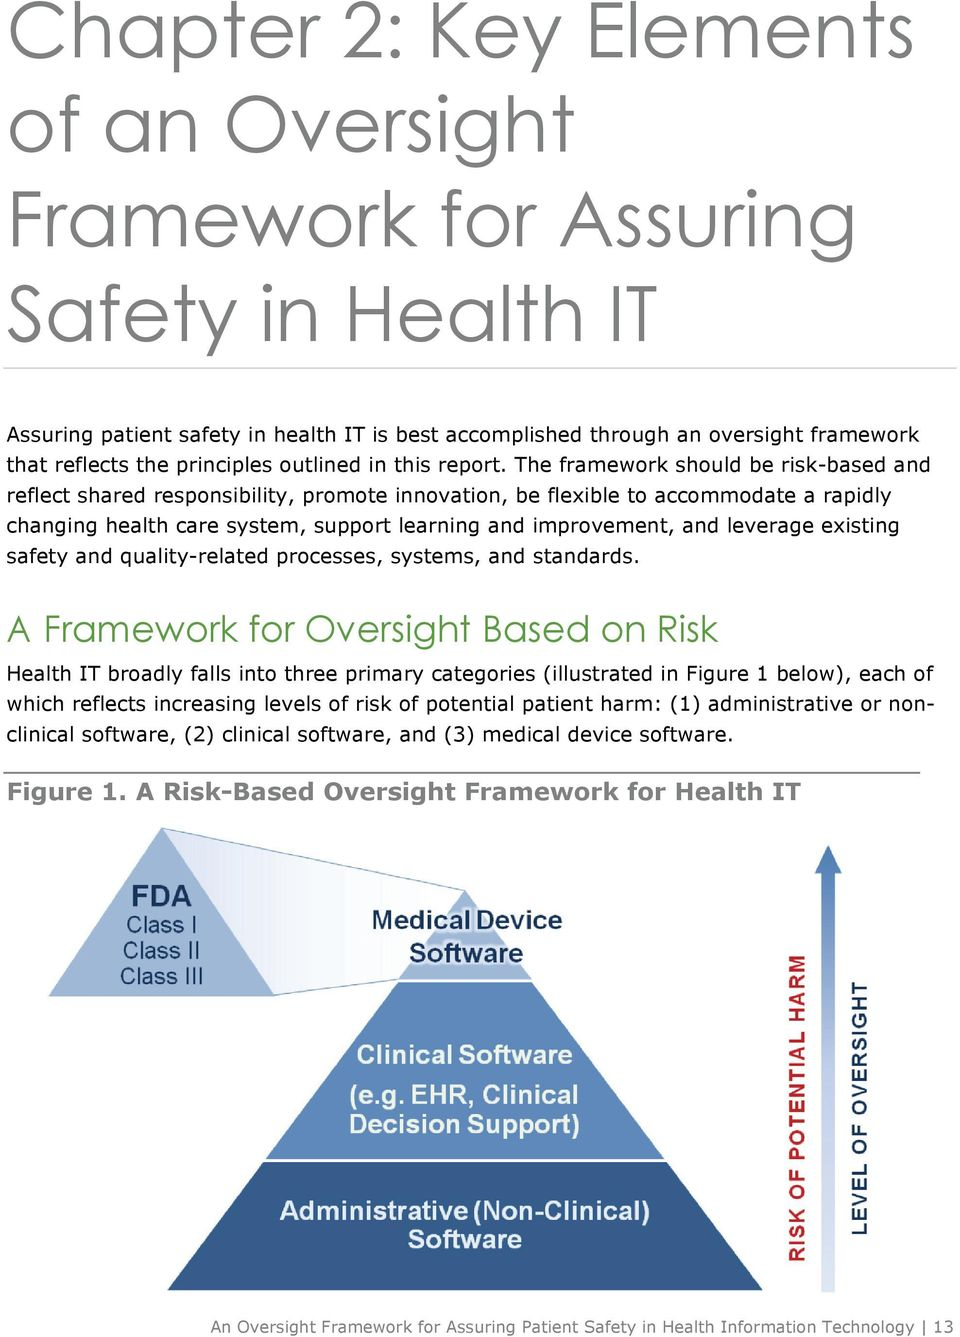 The framework should be risk-based and reflect shared responsibility, promote innovation, be flexible to accommodate a rapidly changing health care system, support learning and improvement, and